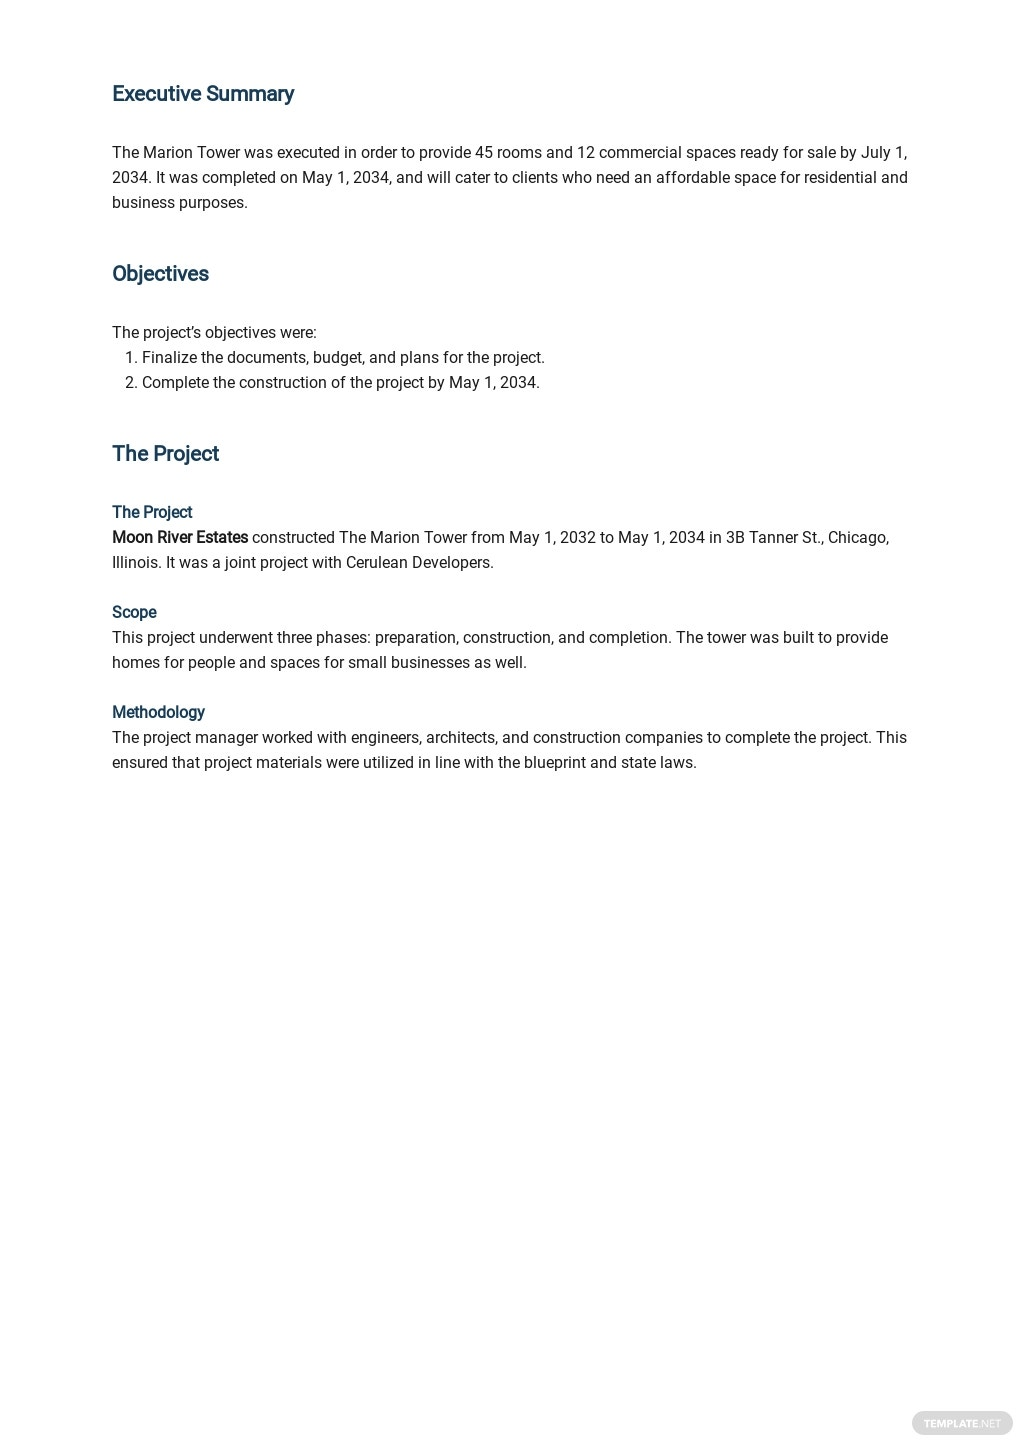 Real Estate Project Report Template 1.jpe